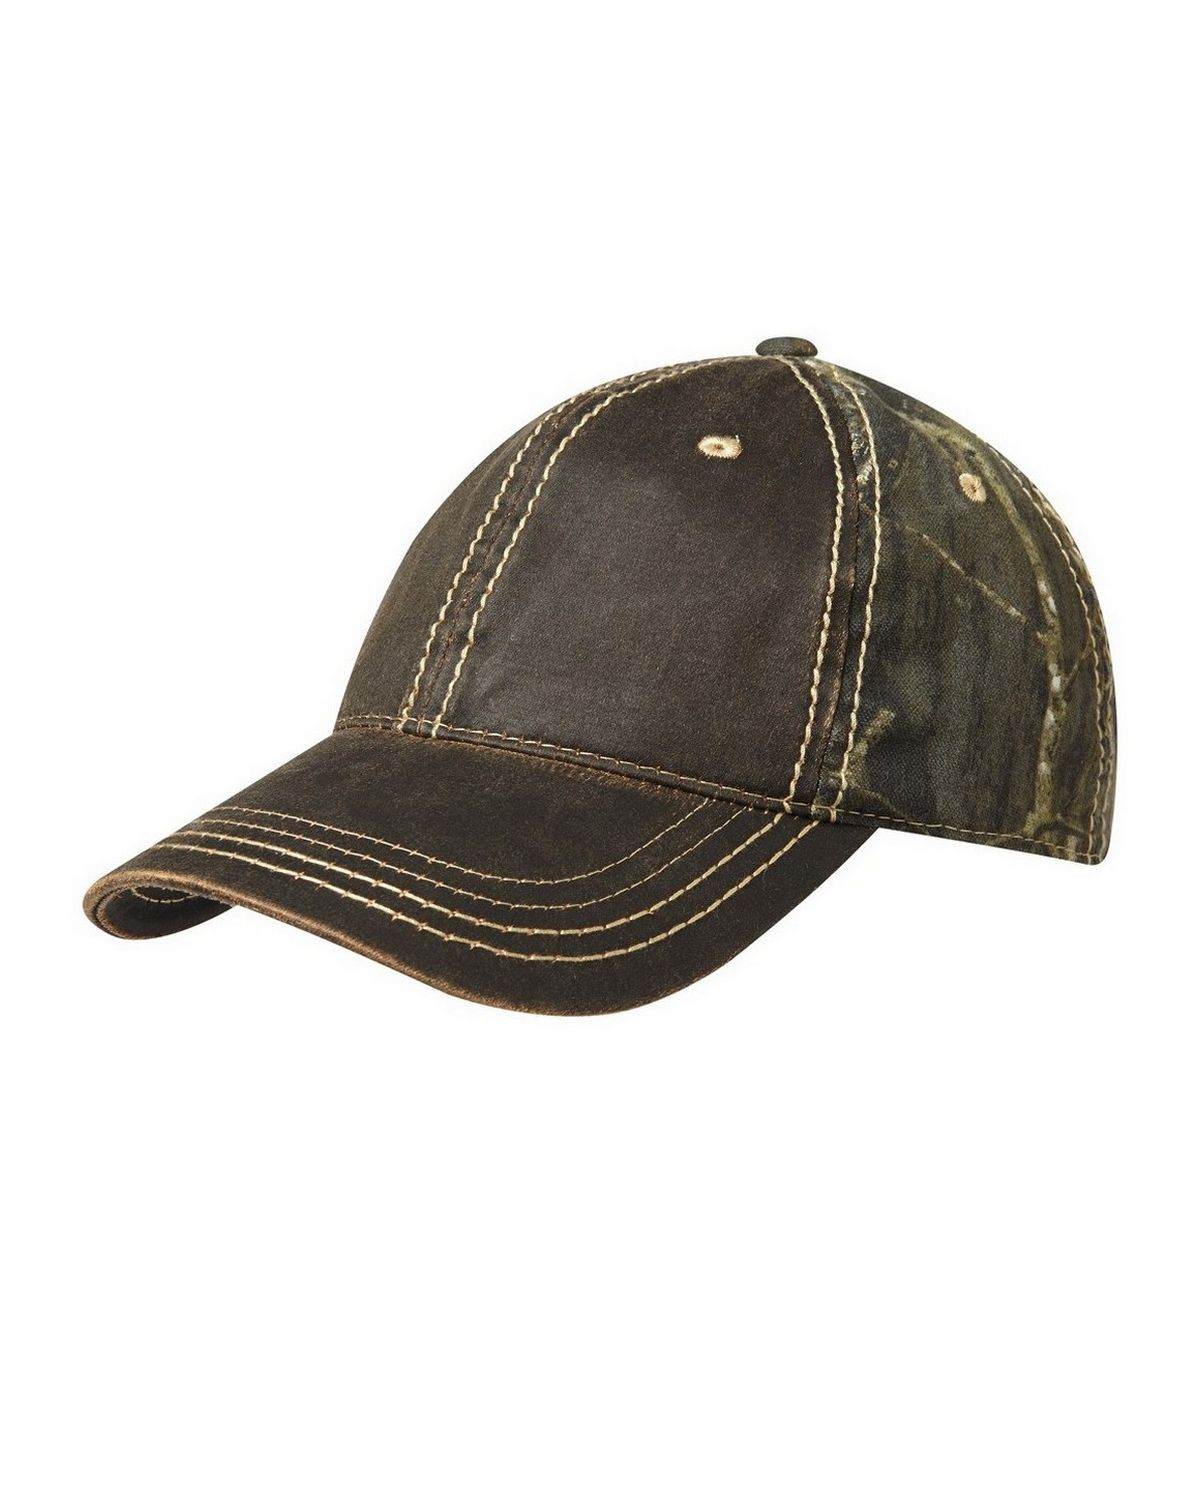 09630634a8581 Buy Port Authority C819 Pigment Dyed Camouflage Cap